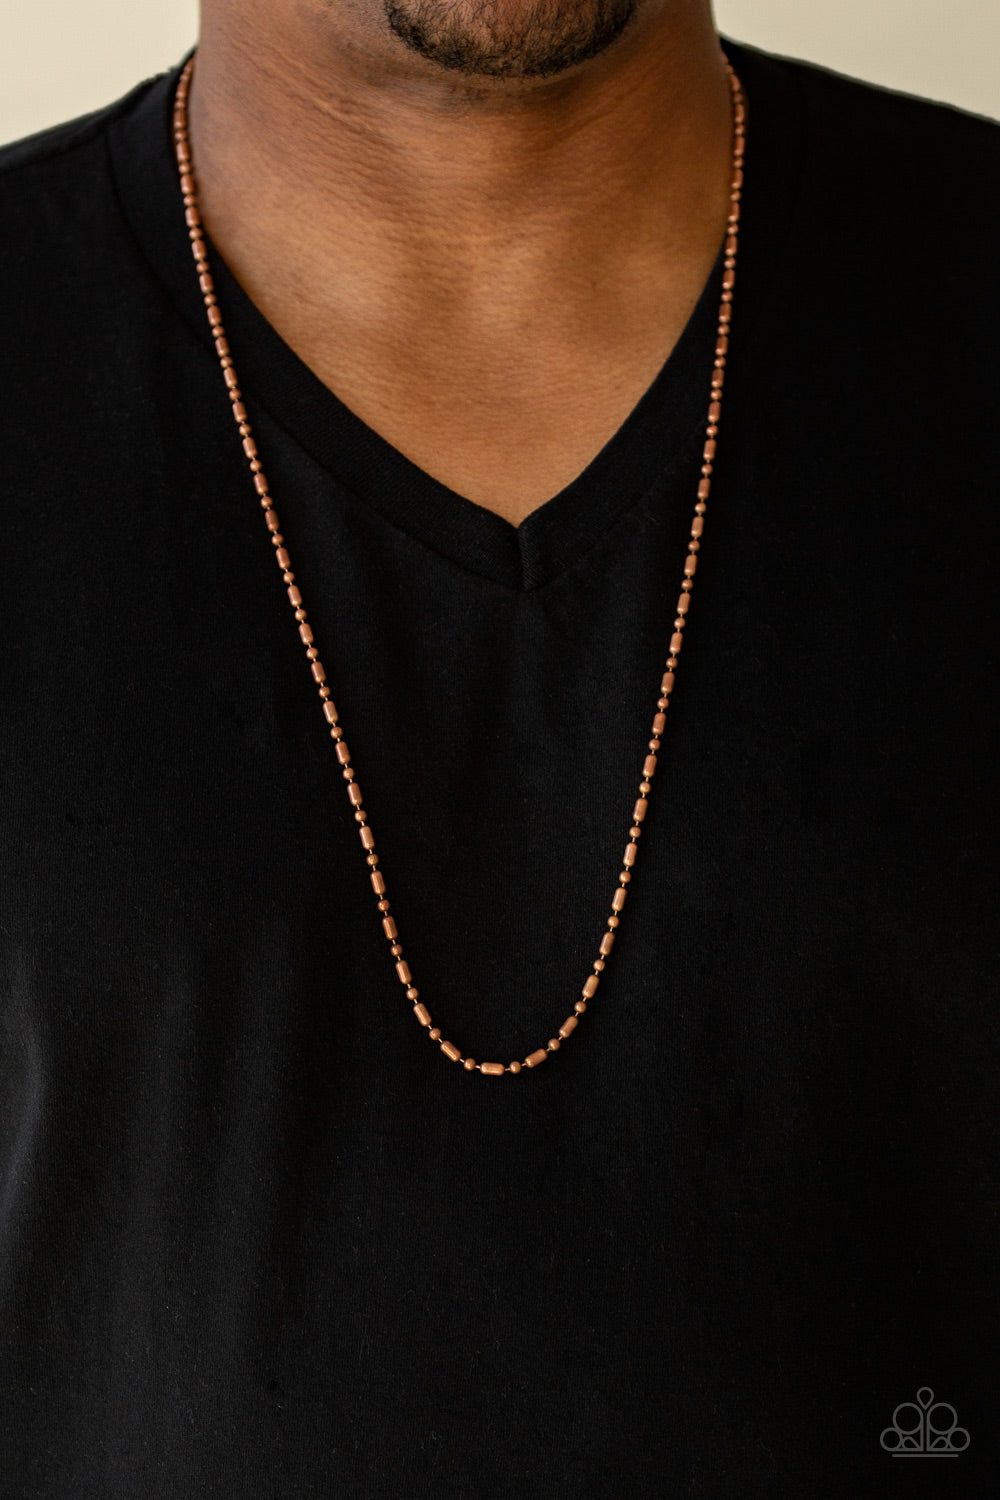 Covert Operation - Copper Paparazzi Jewelry Necklace paparazzi accessories jewelry Necklace Men